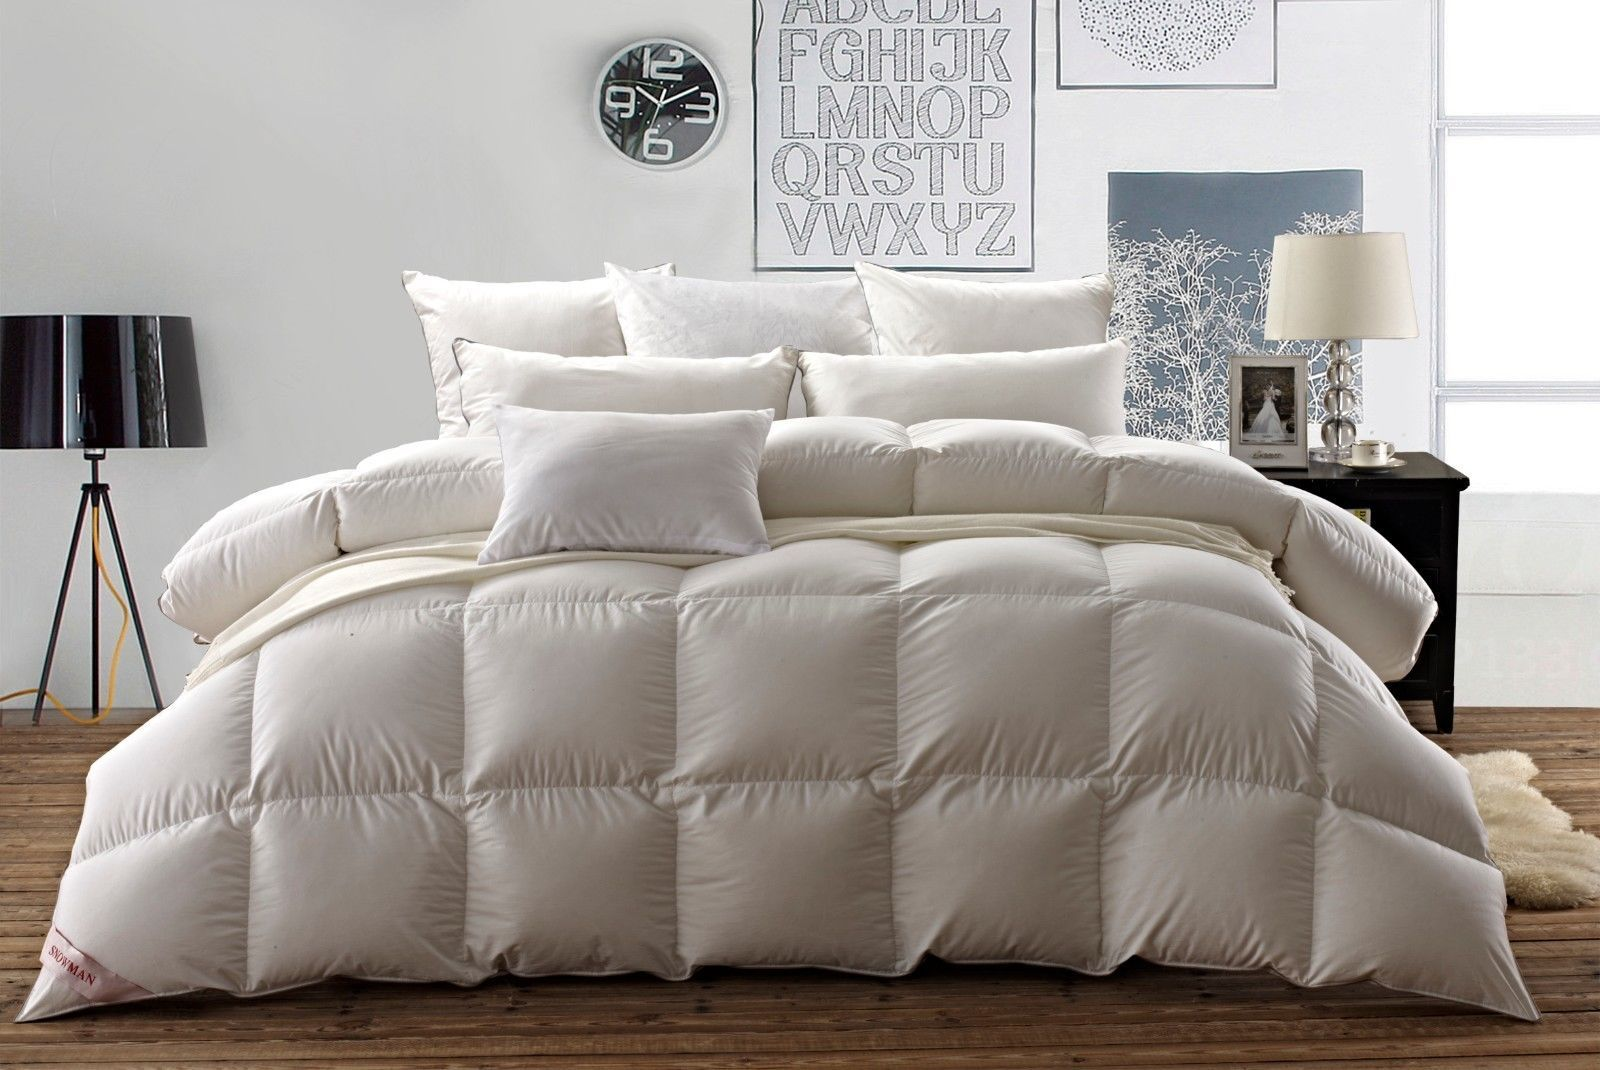 Details About Snowman Goose Down Comforter King 65oz Fill Weight